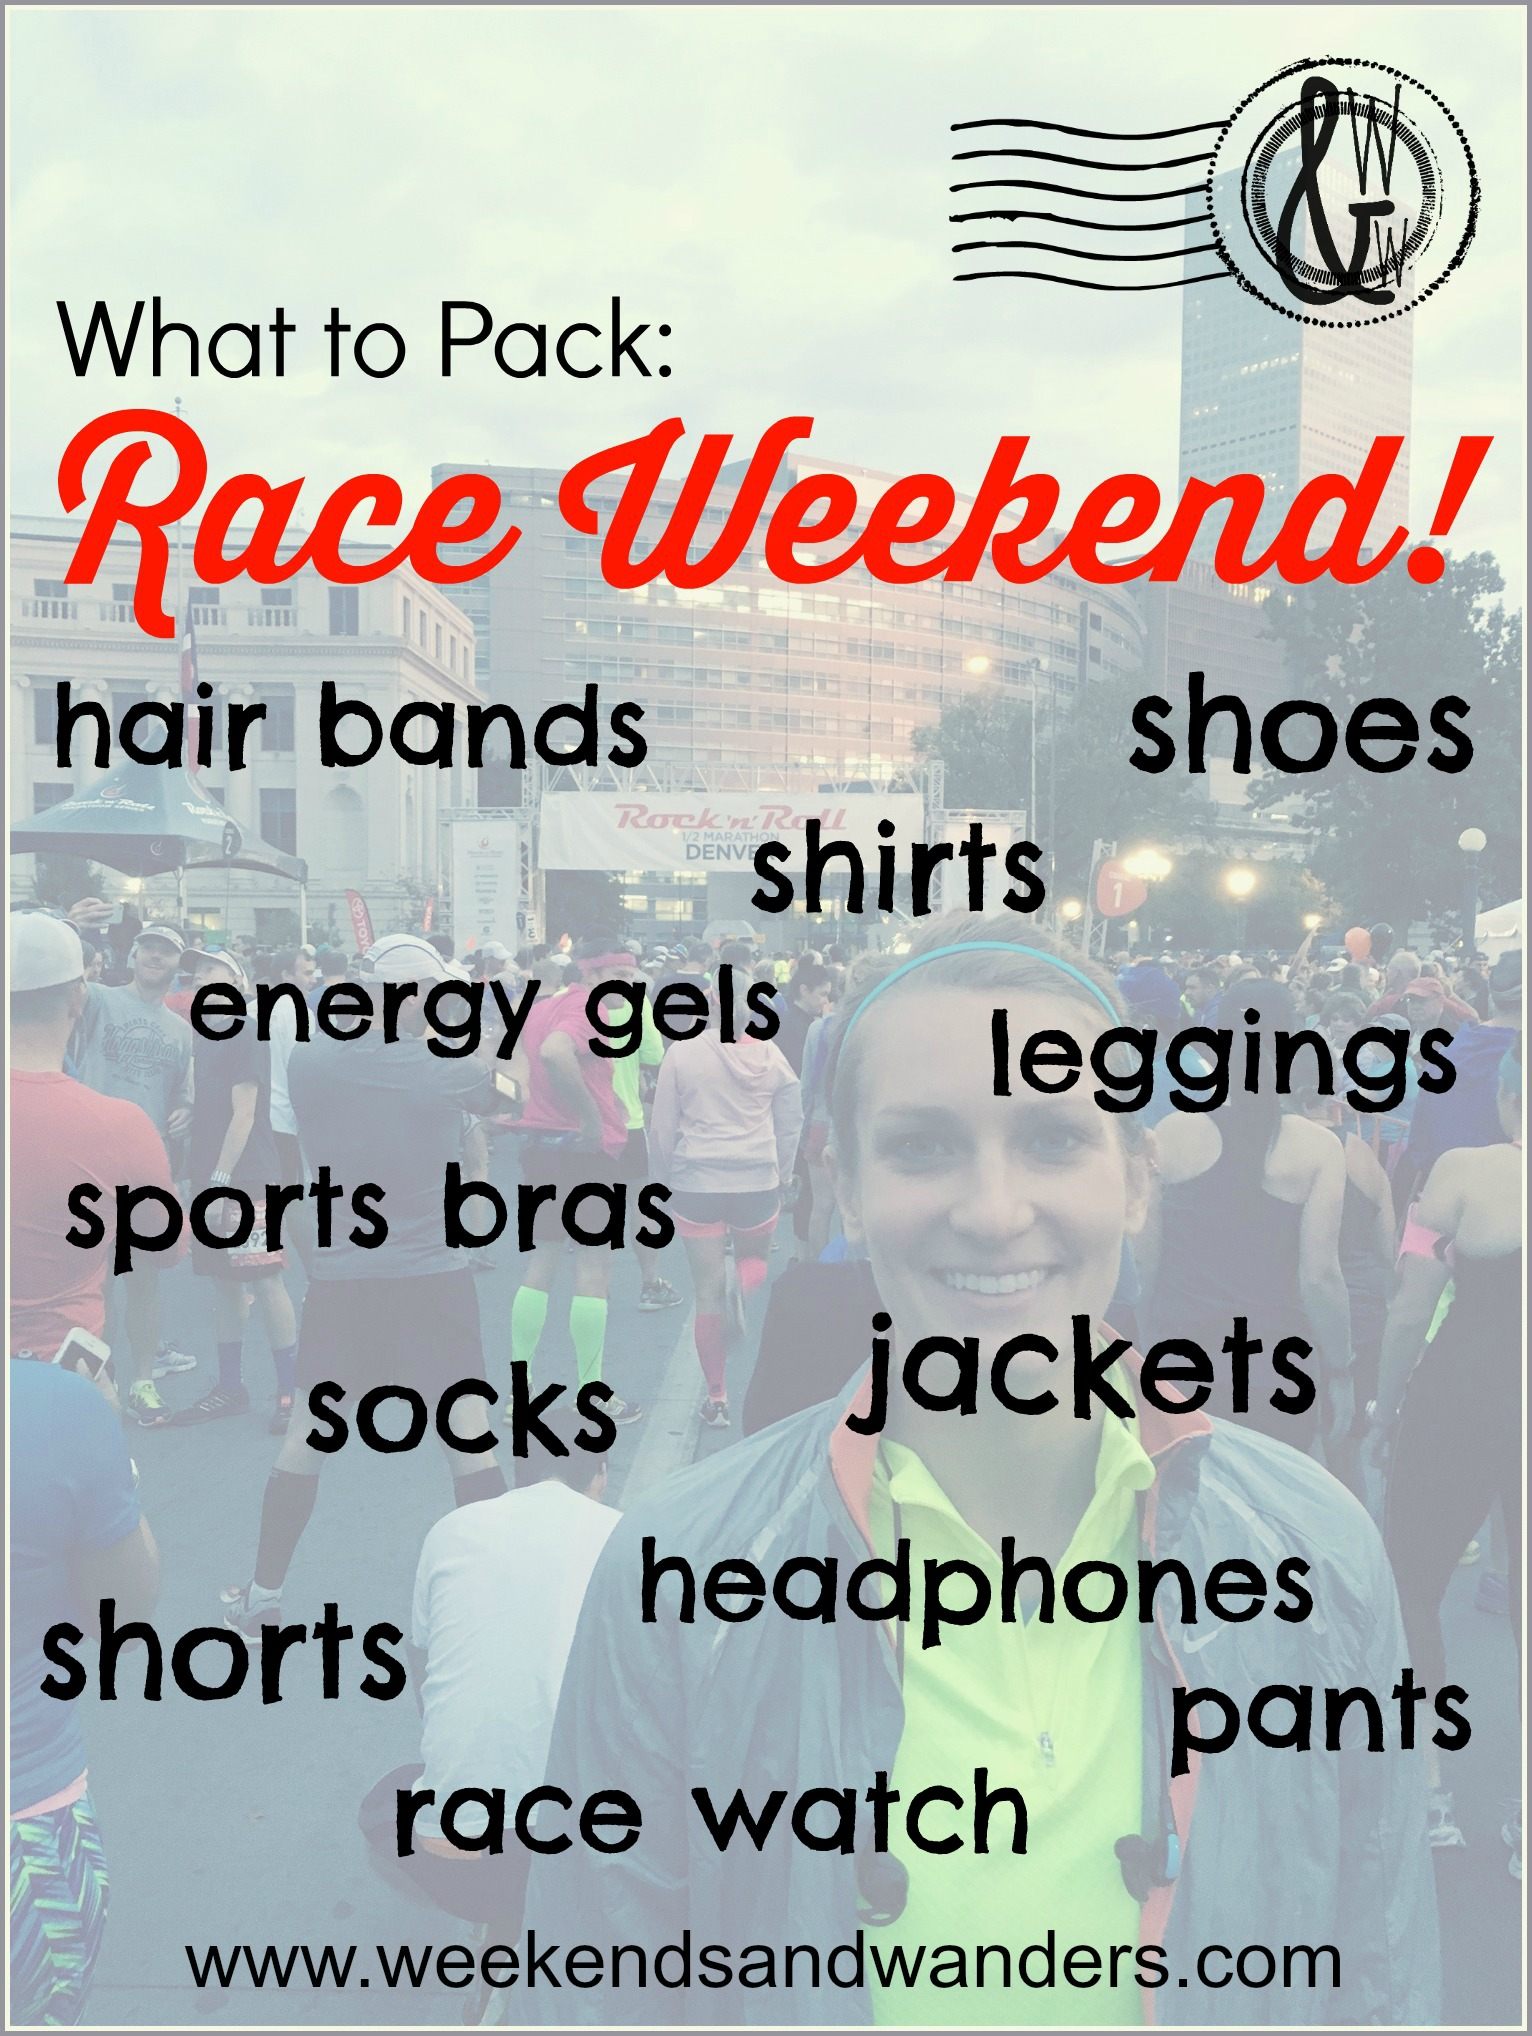 Knowing what to pack for a race weekend can be tricky. What if you forget something? What if it rains? See how I make sure I'm prepared for everything!